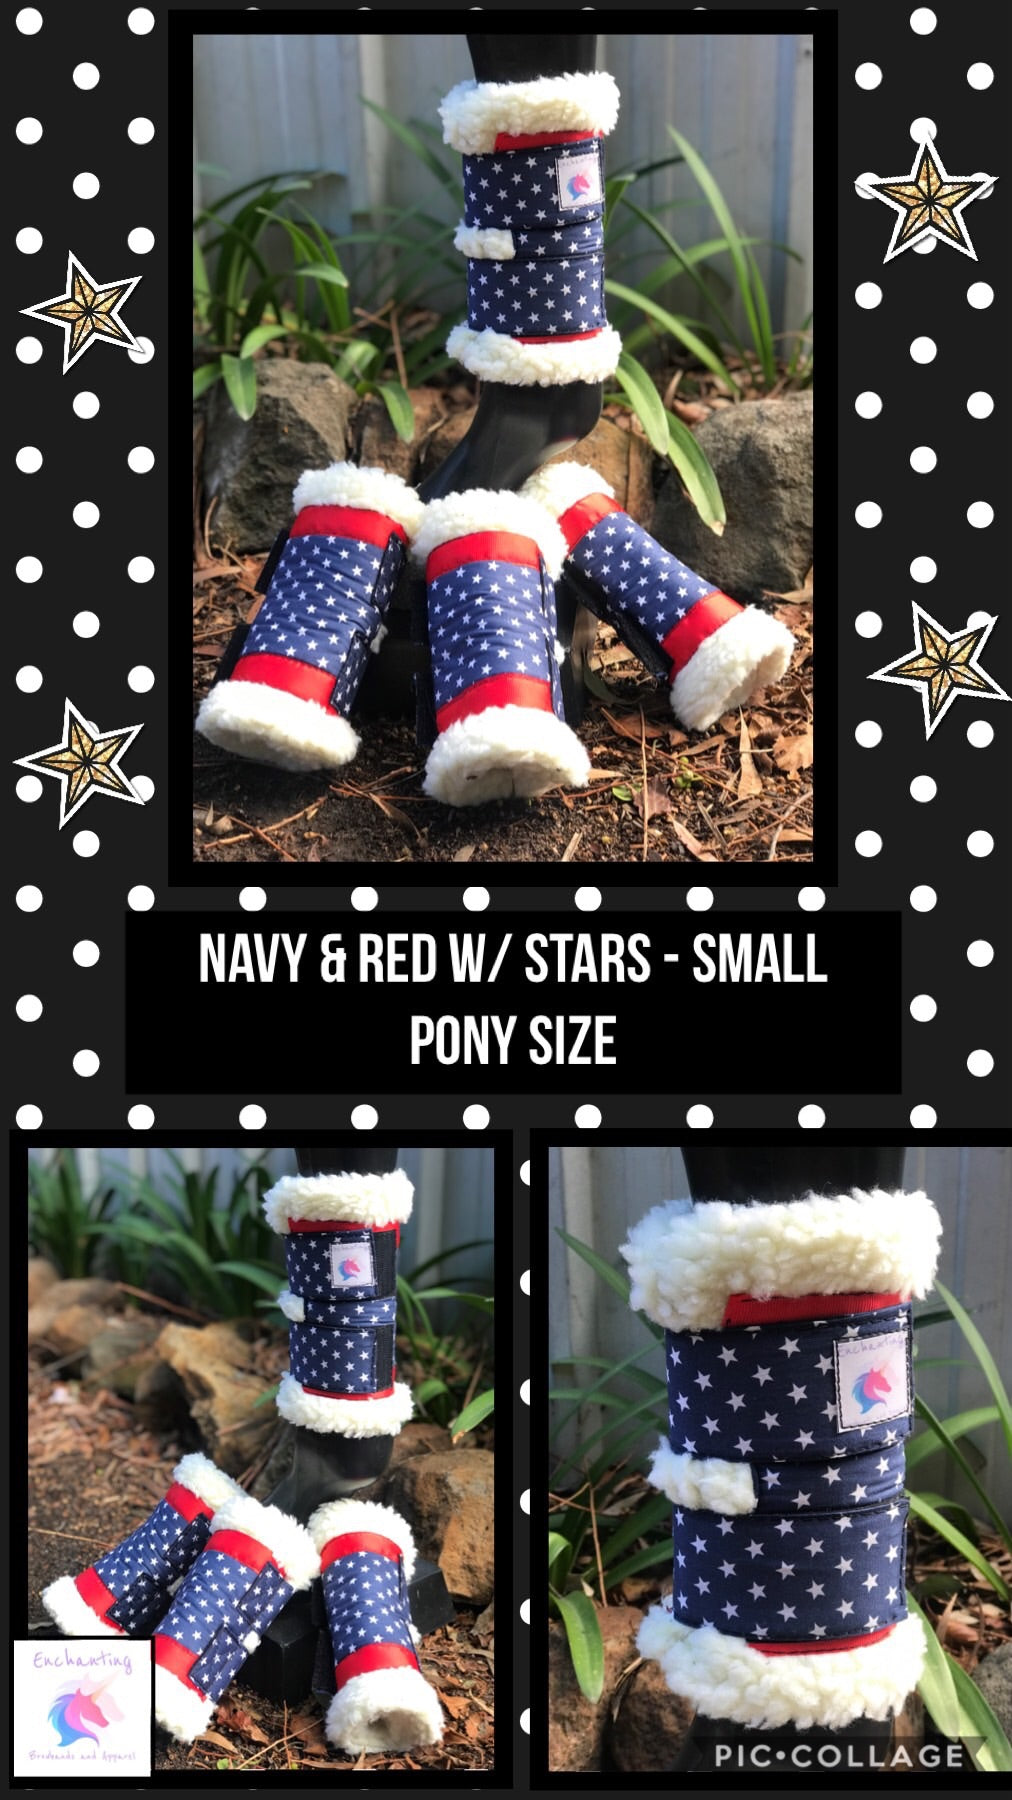 Navy & red w/ stars boots